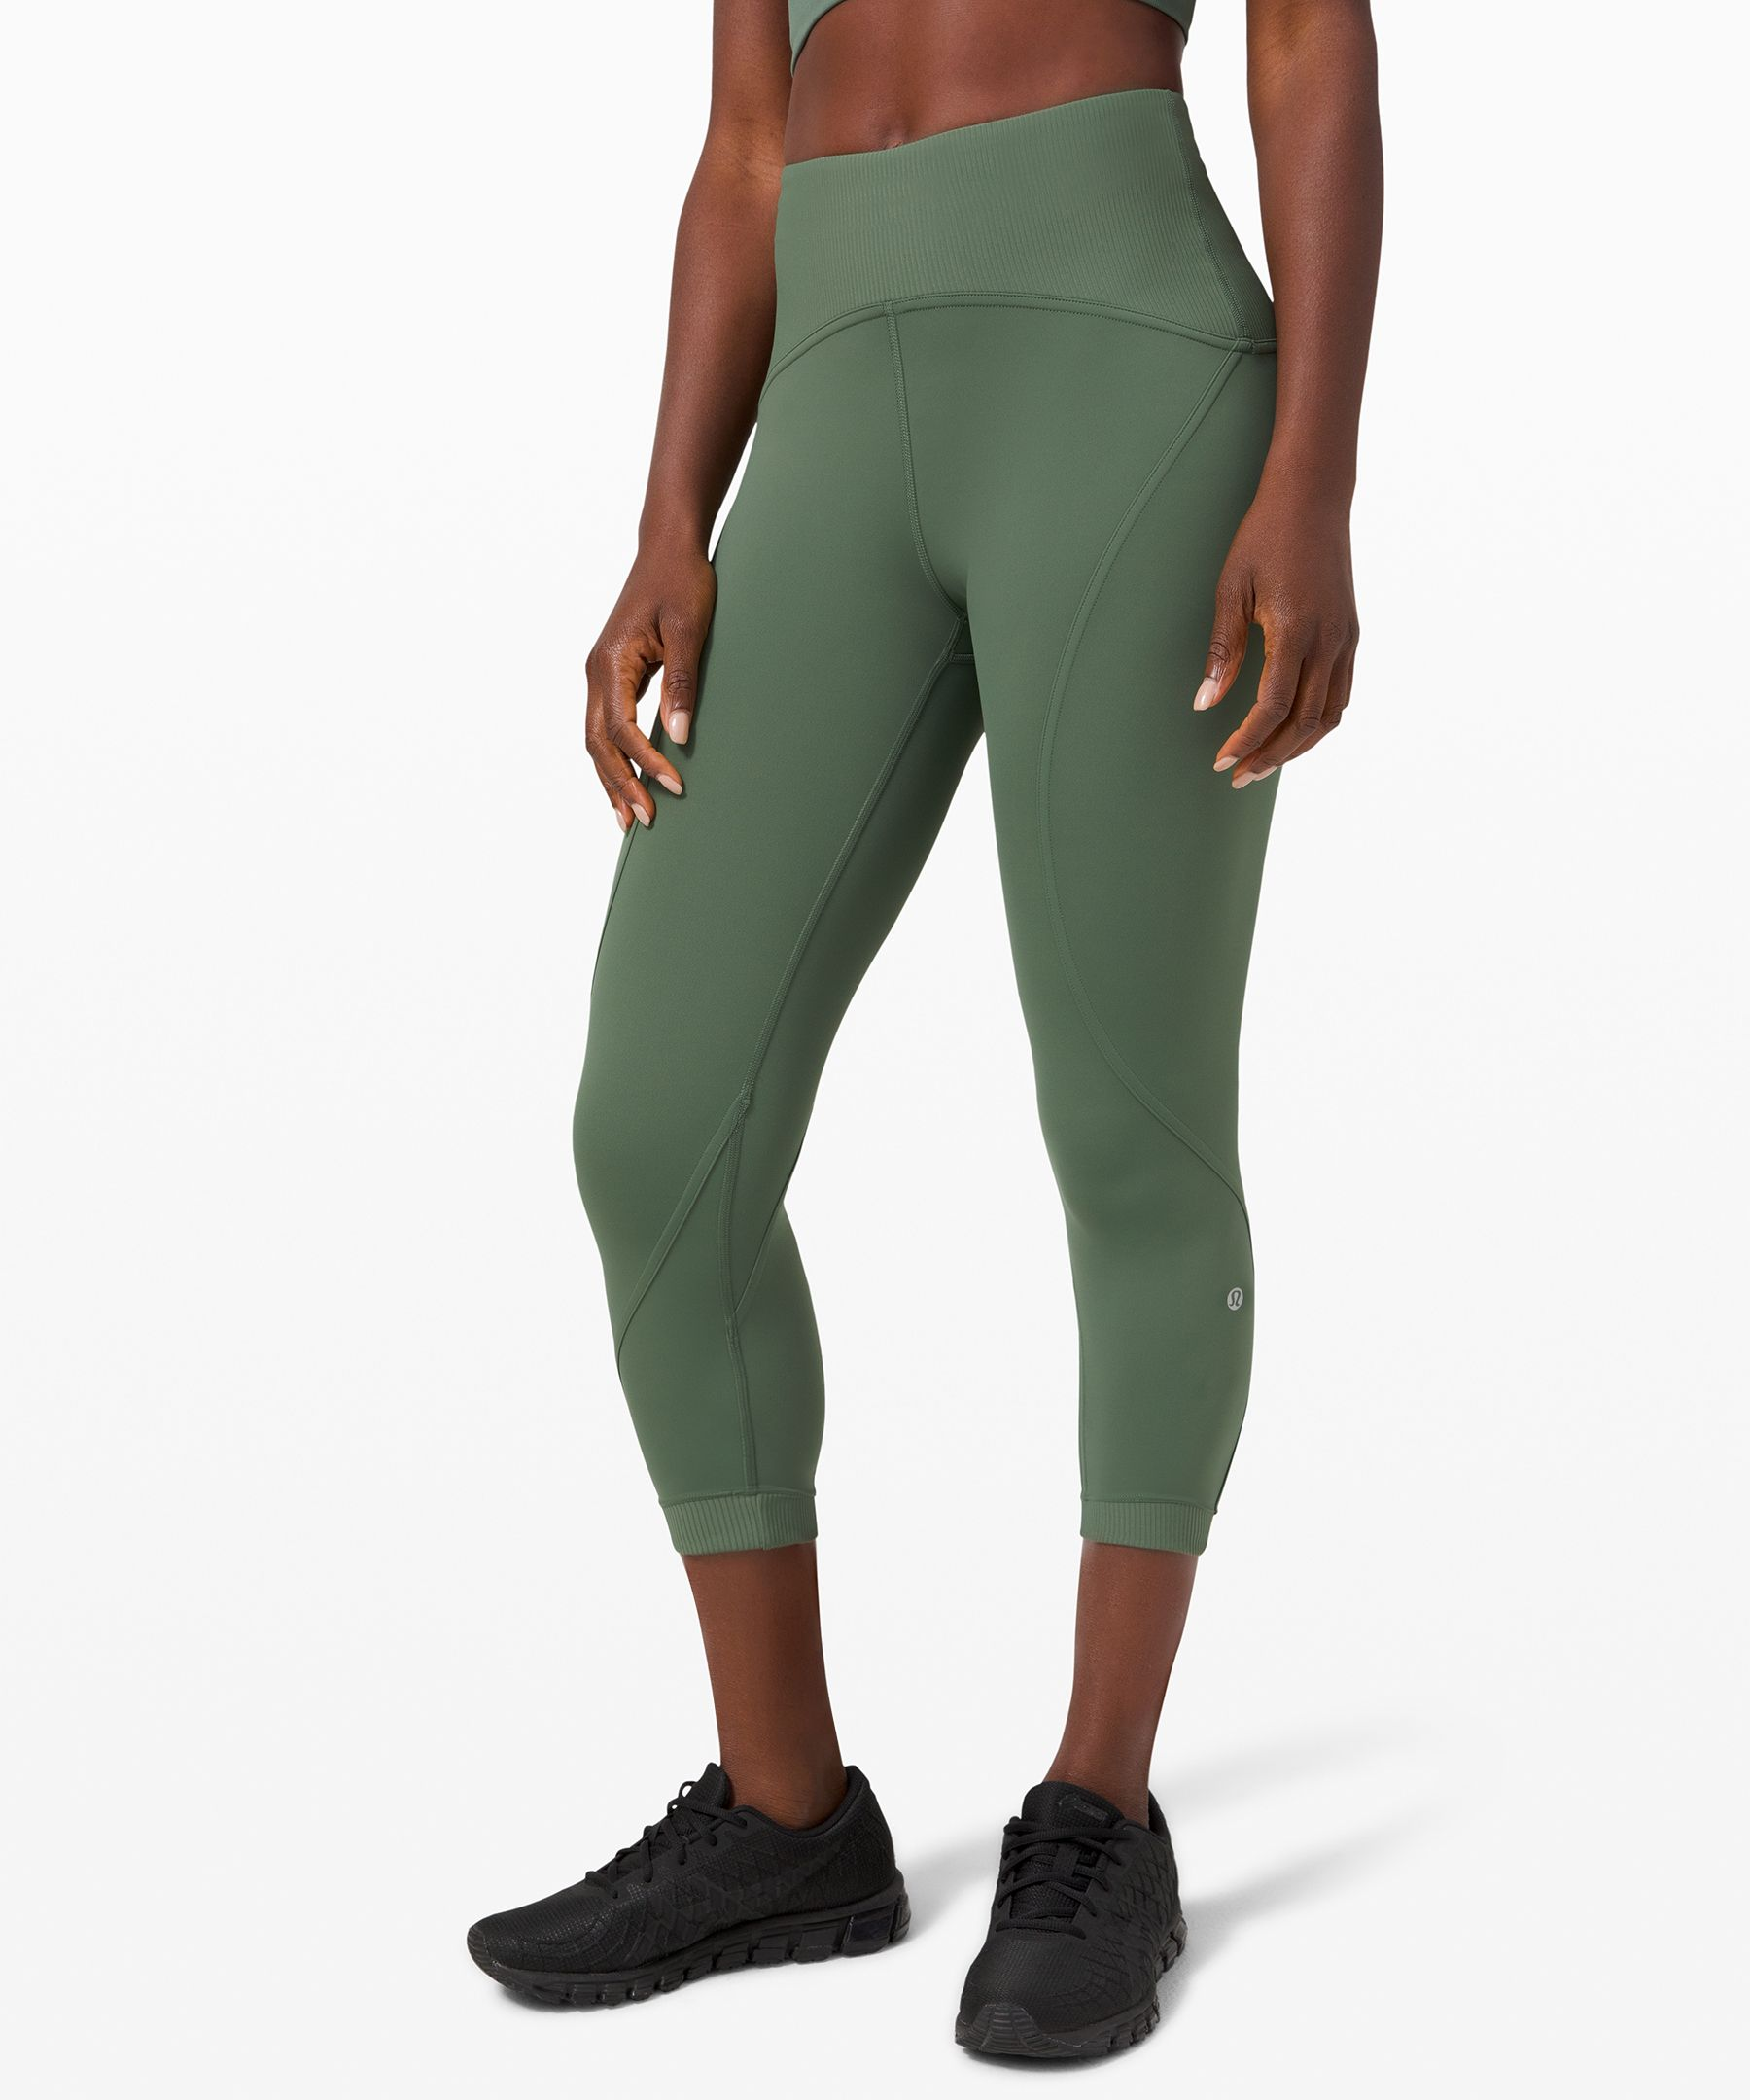 Move freely and forget your  sweat in these sleek,  technical crops. Ribbed  detailing and quick-drying  Nulux™ fabric make them the  perfect companion for  transitioning from studio to  street.